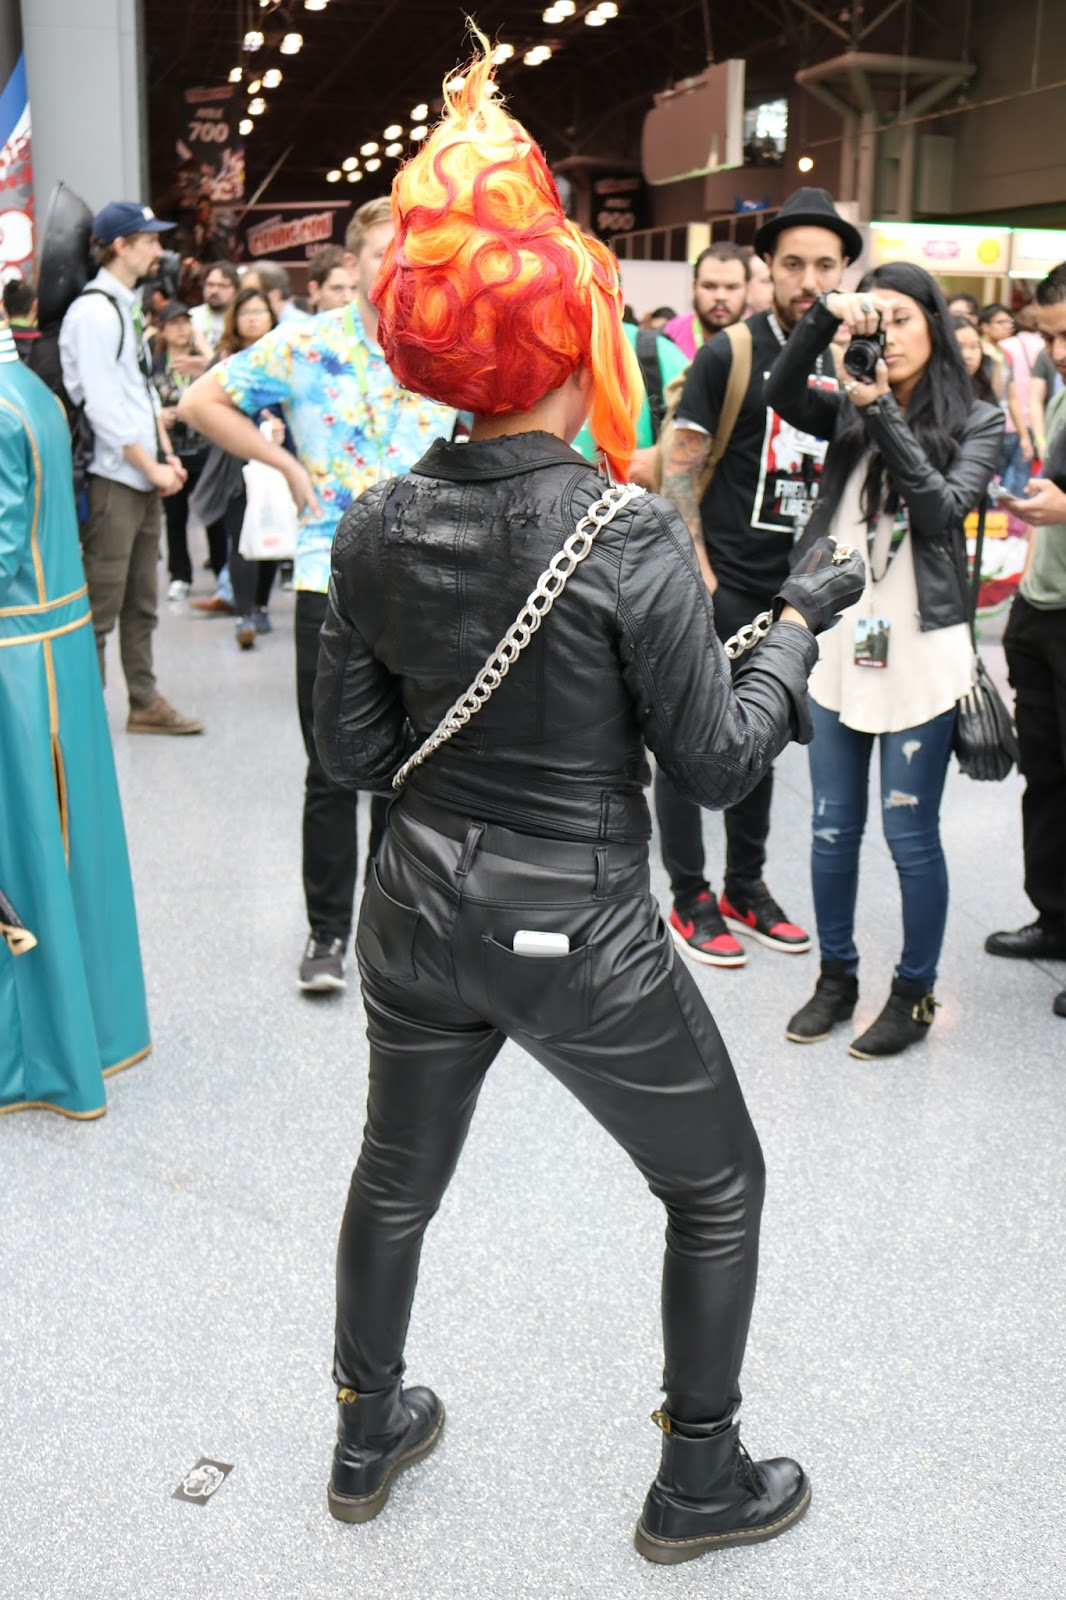 Ghost rider cosplay at new york comic con 2015 nubias nonsense who knew ghost rider likes dogs solutioingenieria Gallery